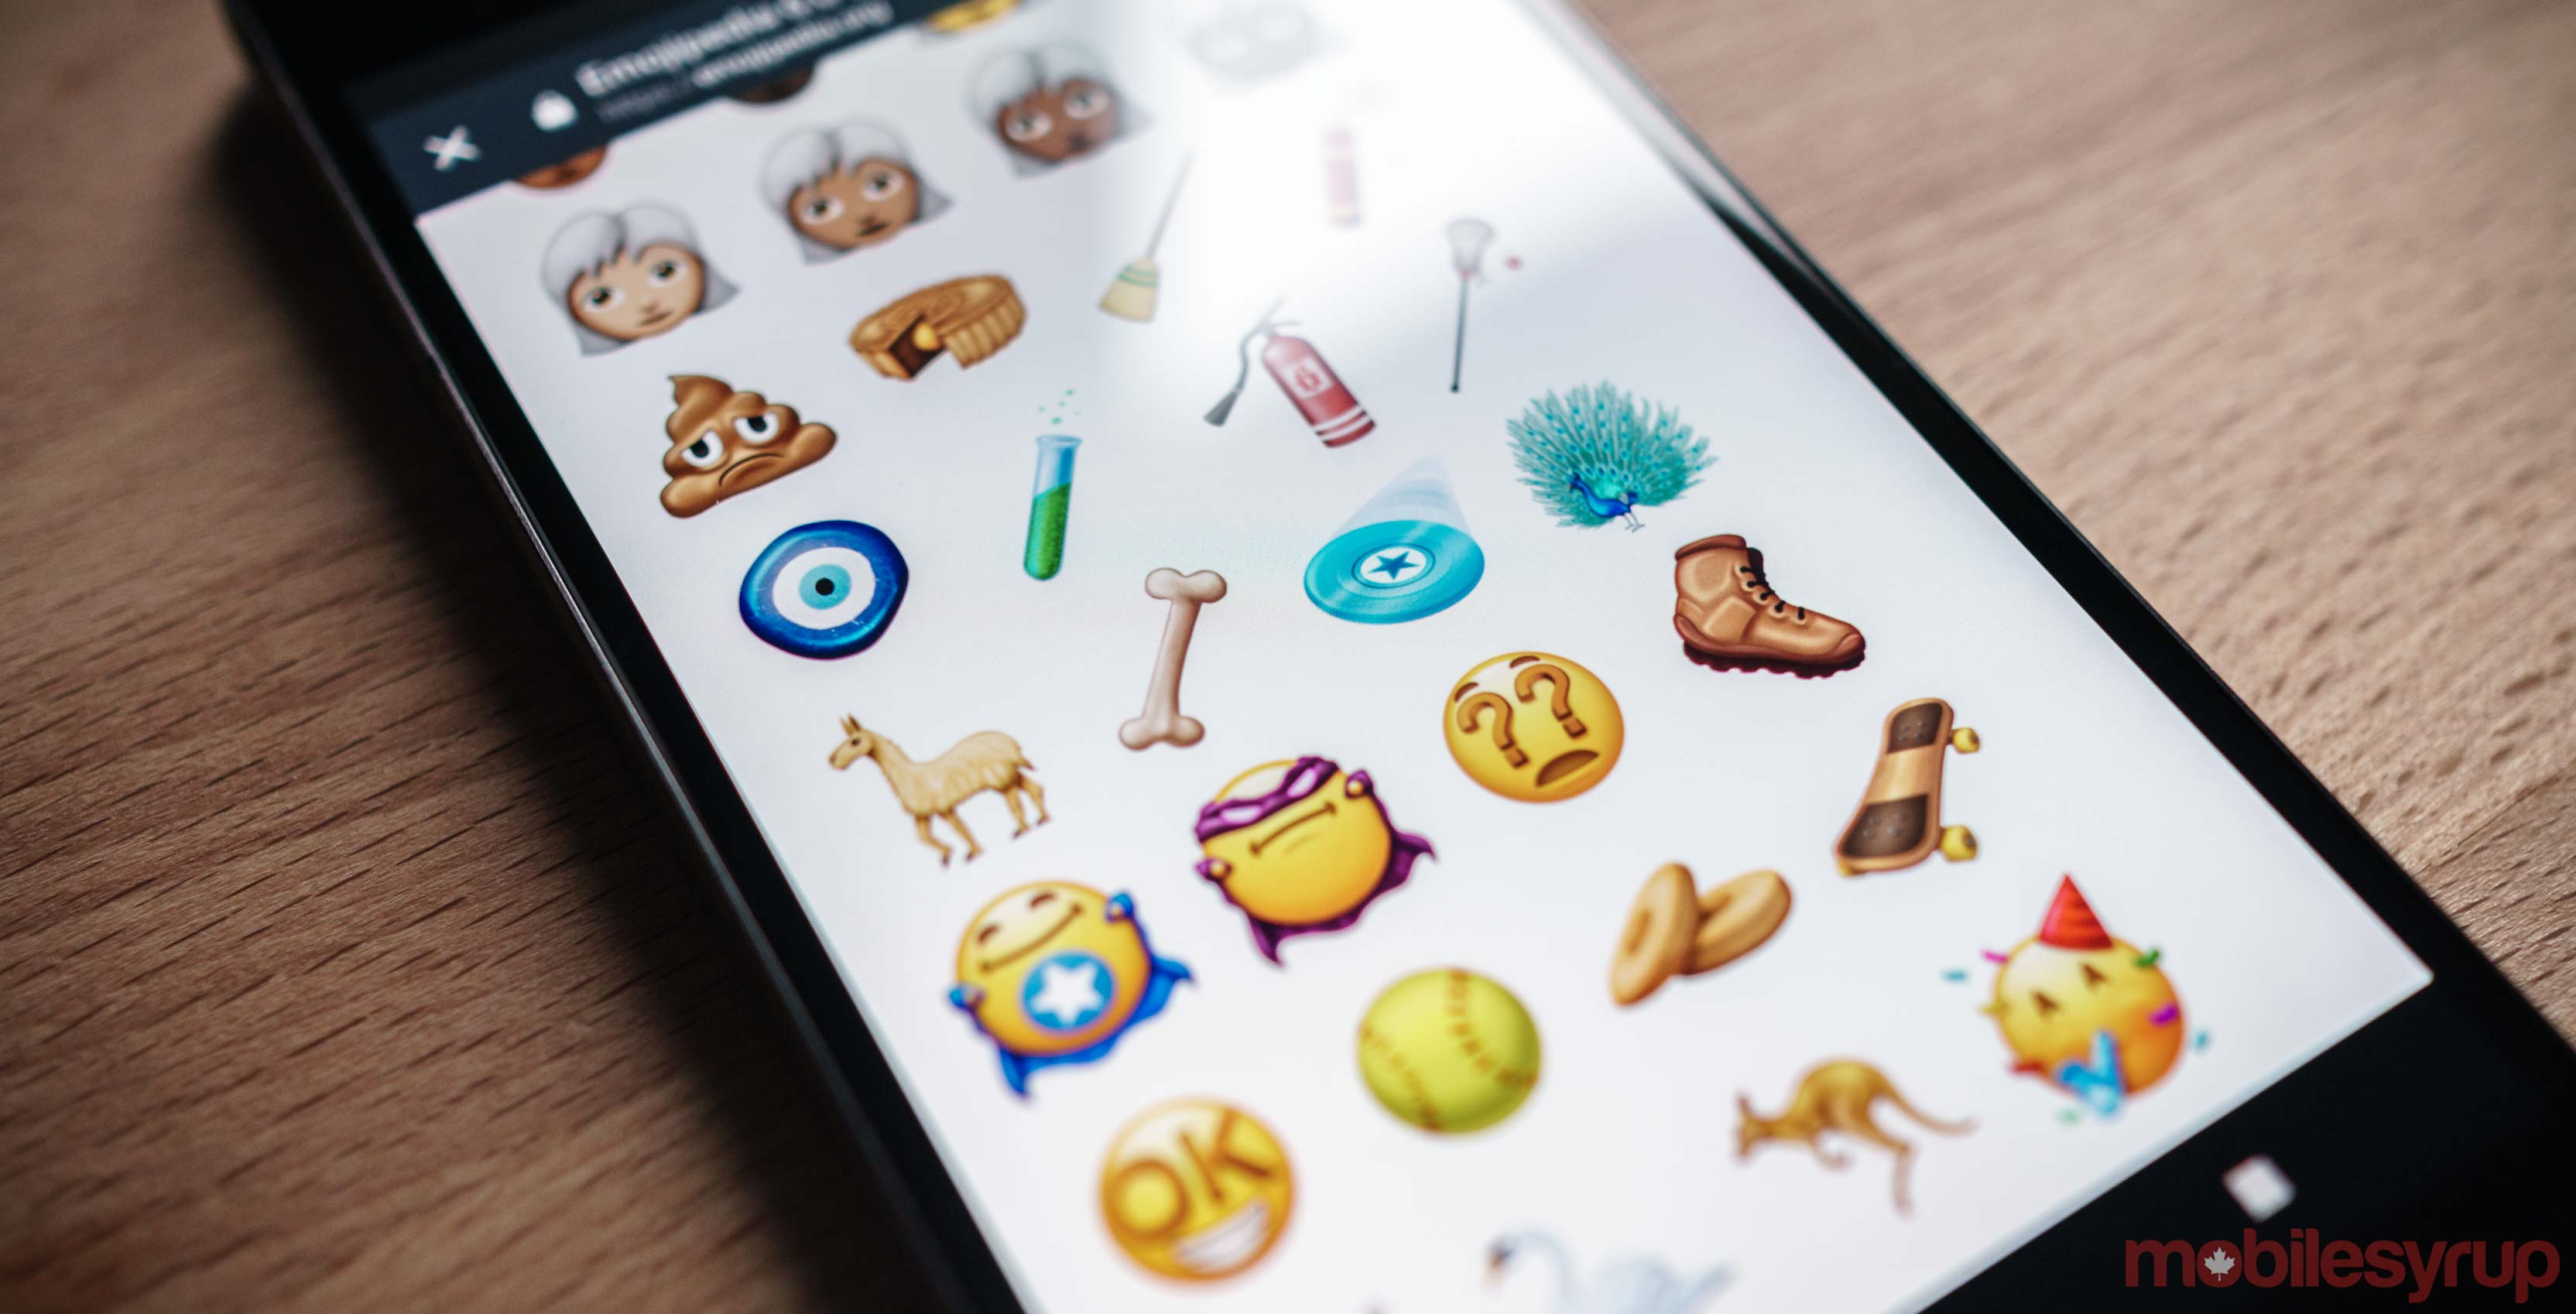 wheelchair emoji childrens wooden chair engraved unicode 12 candidates include diverse families